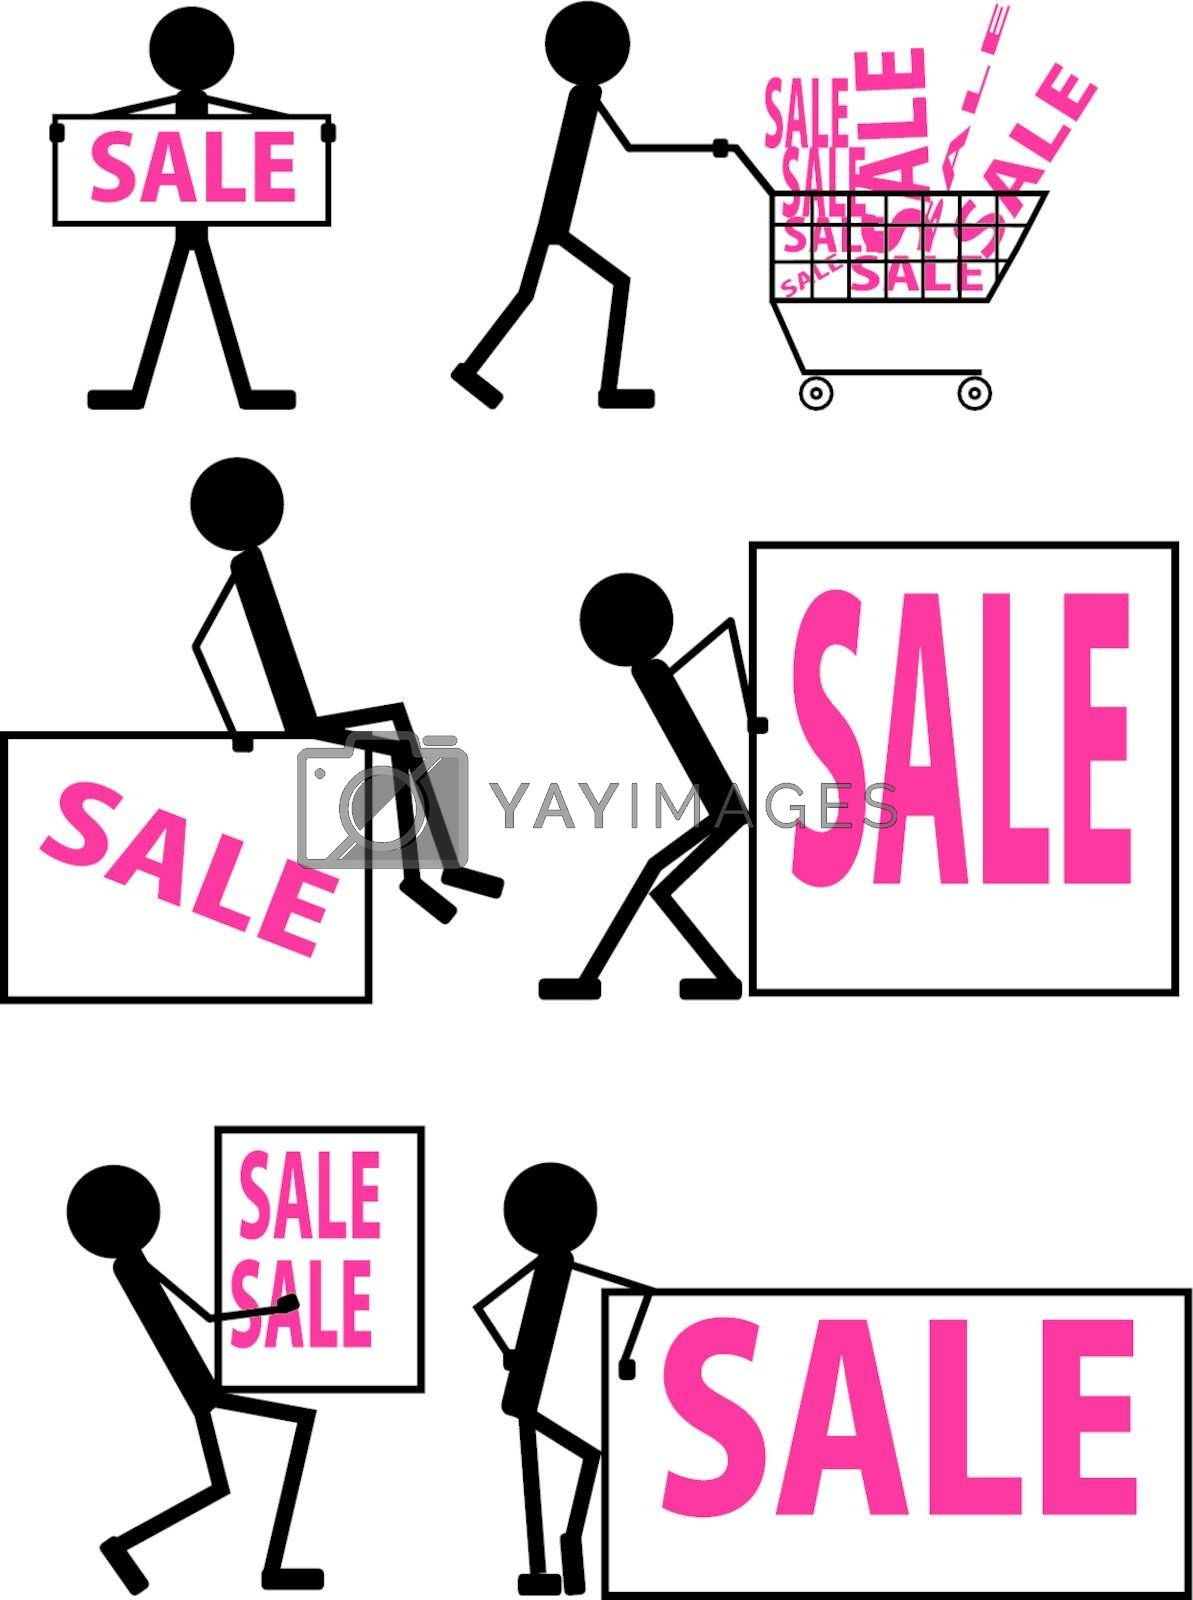 Icons with the image of people for sale